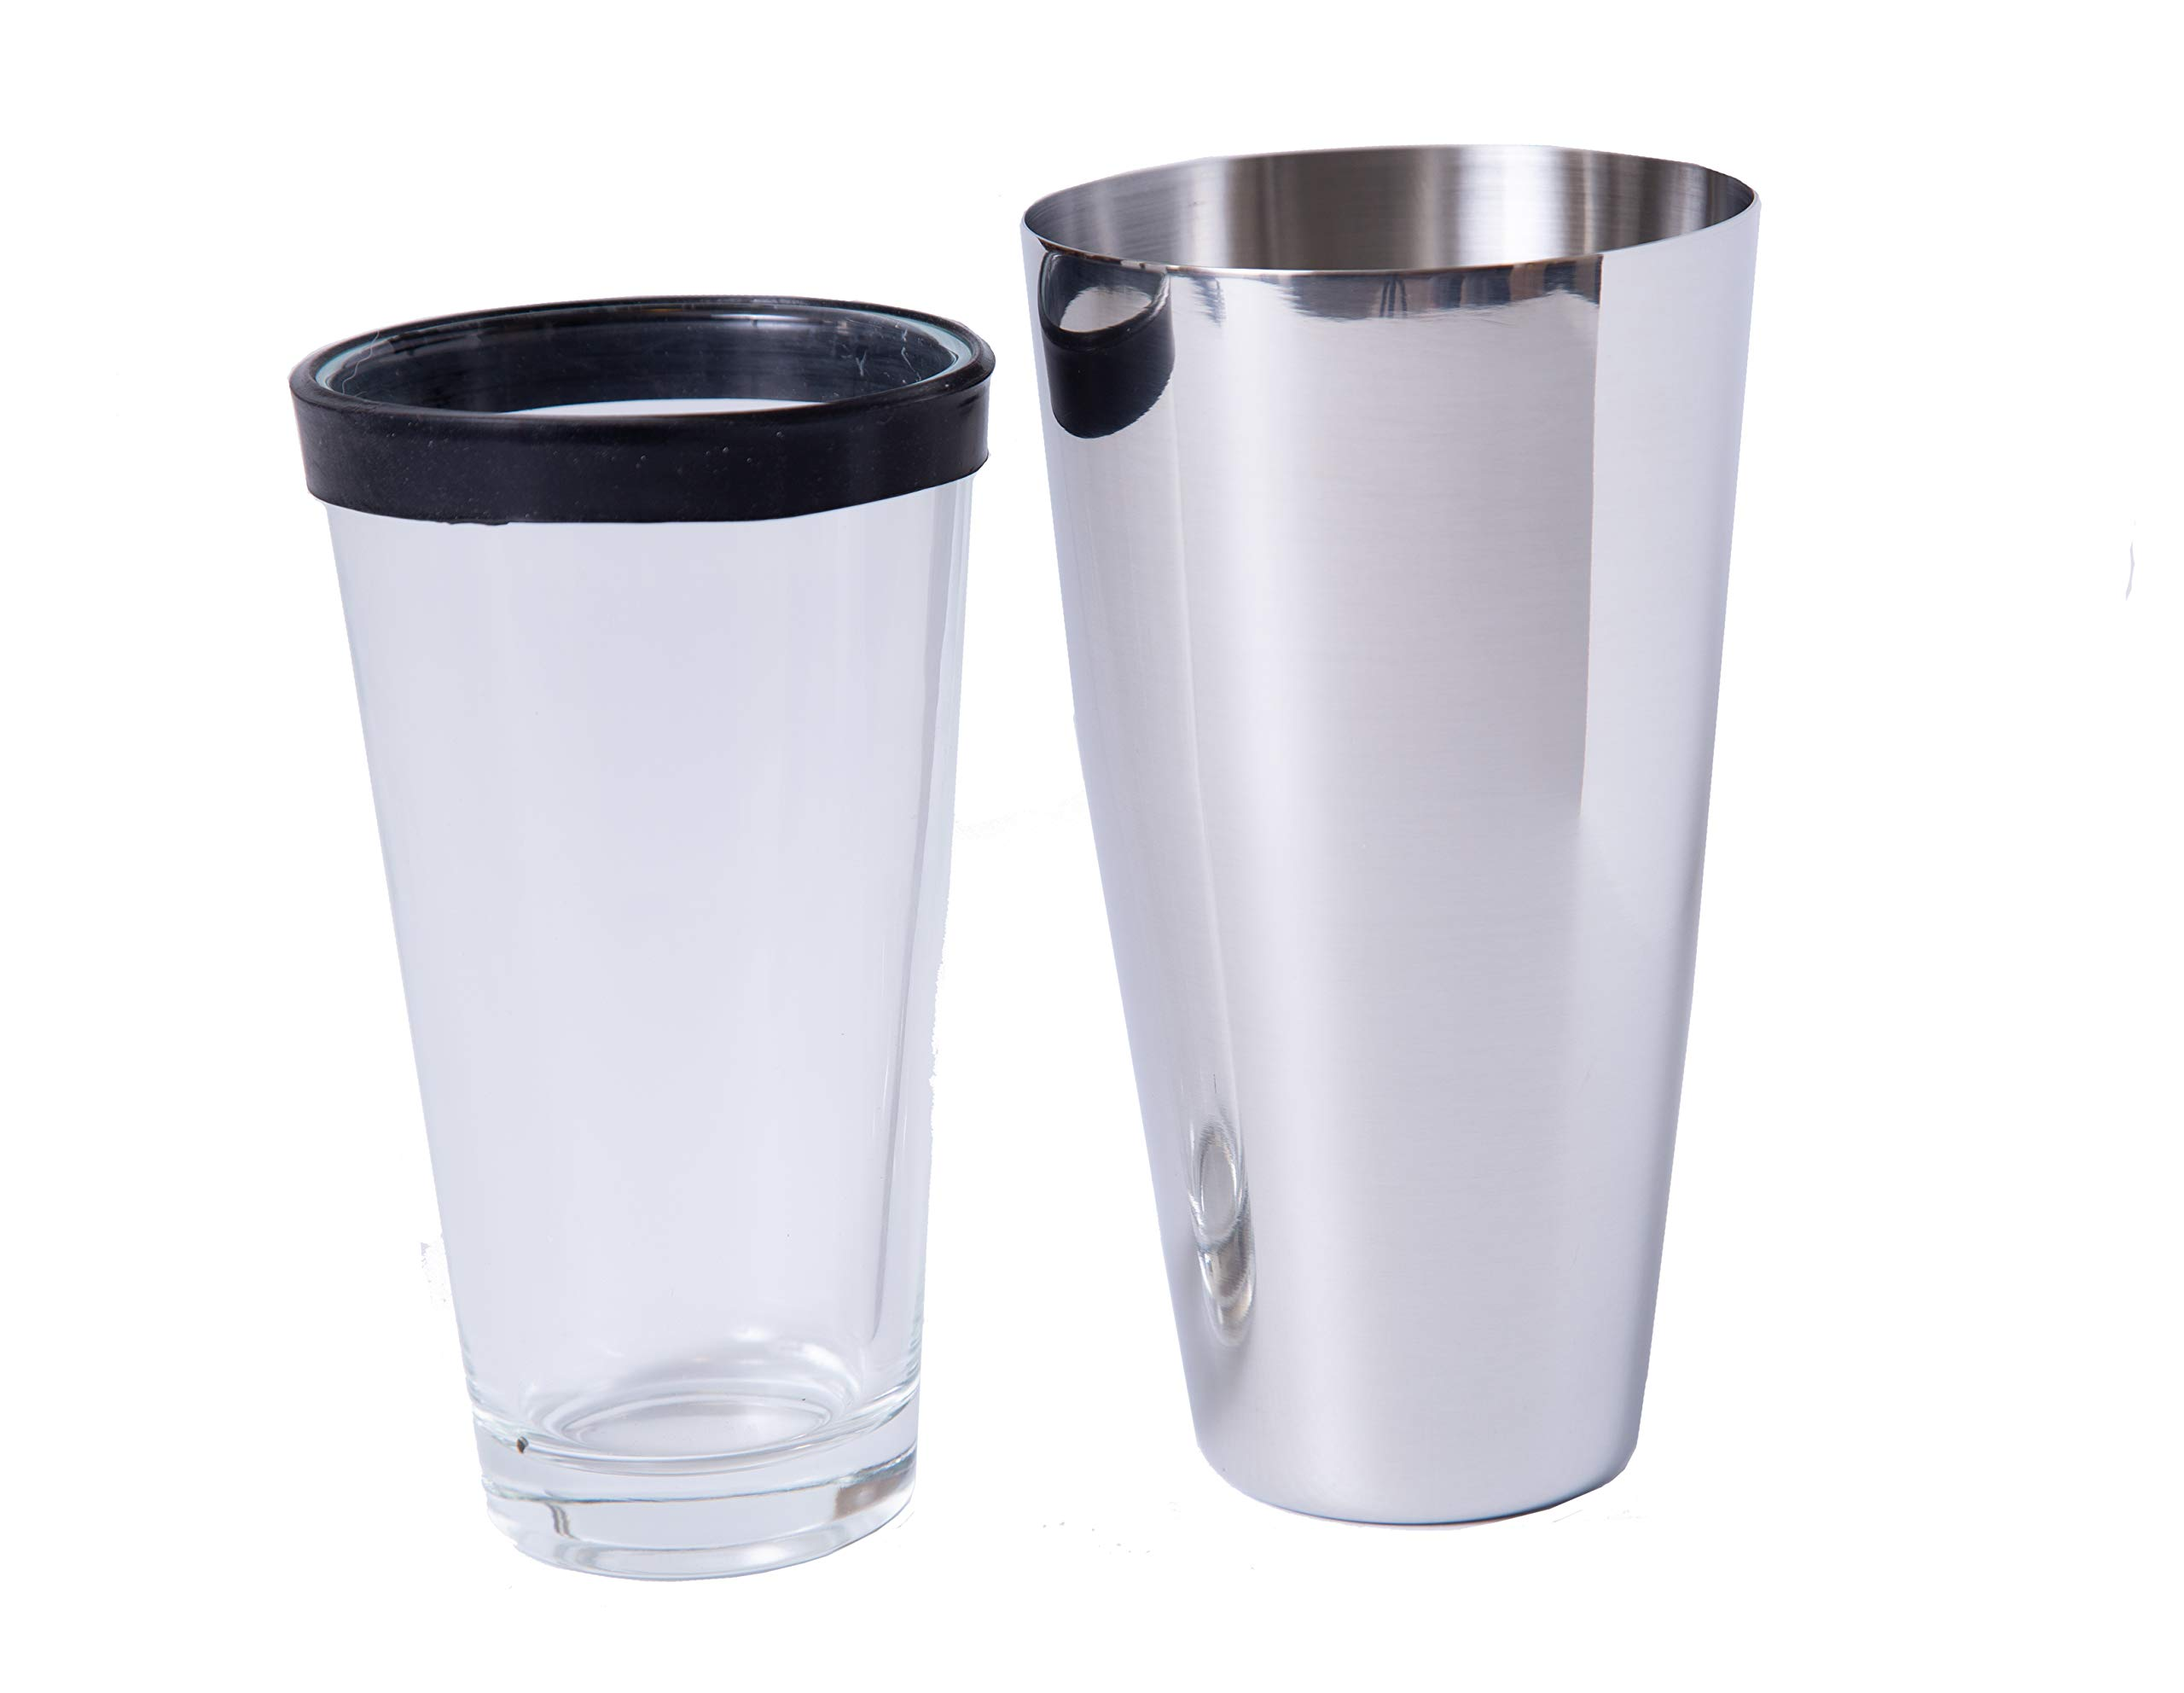 BAR DUDES Boston Shaker Cocktail Shaker With Rubber Gasket On Mixing Glass - Stainless Steel Drink Shaker and Mixing Glass - Rubber Gasket On Glass Ensures Great Seal for Shaking Every Time